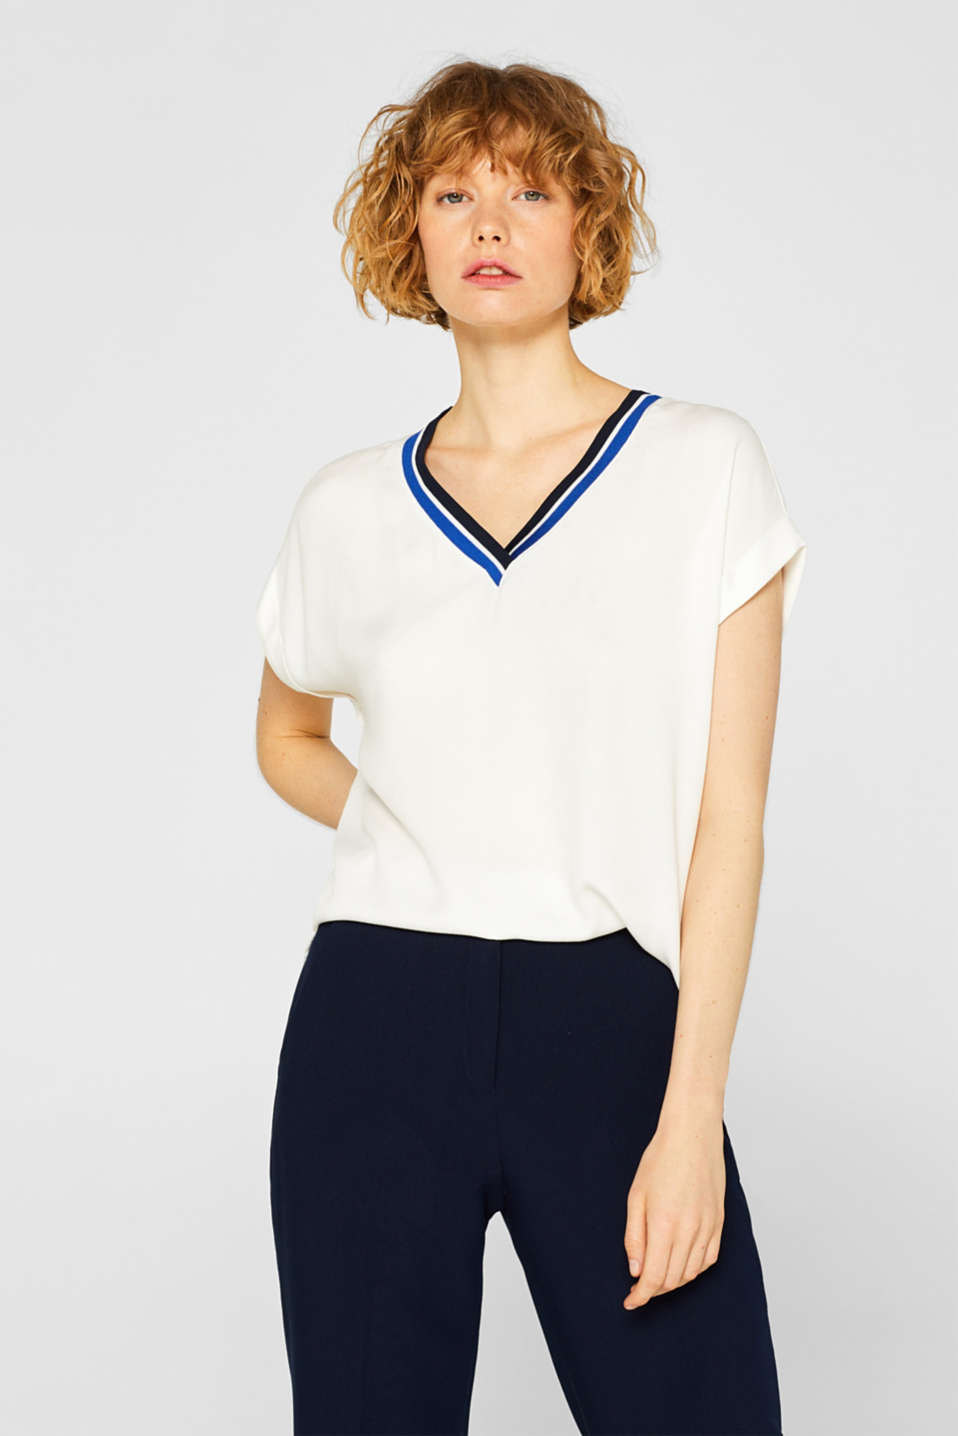 Esprit - Blouse top with a striped neckline trim